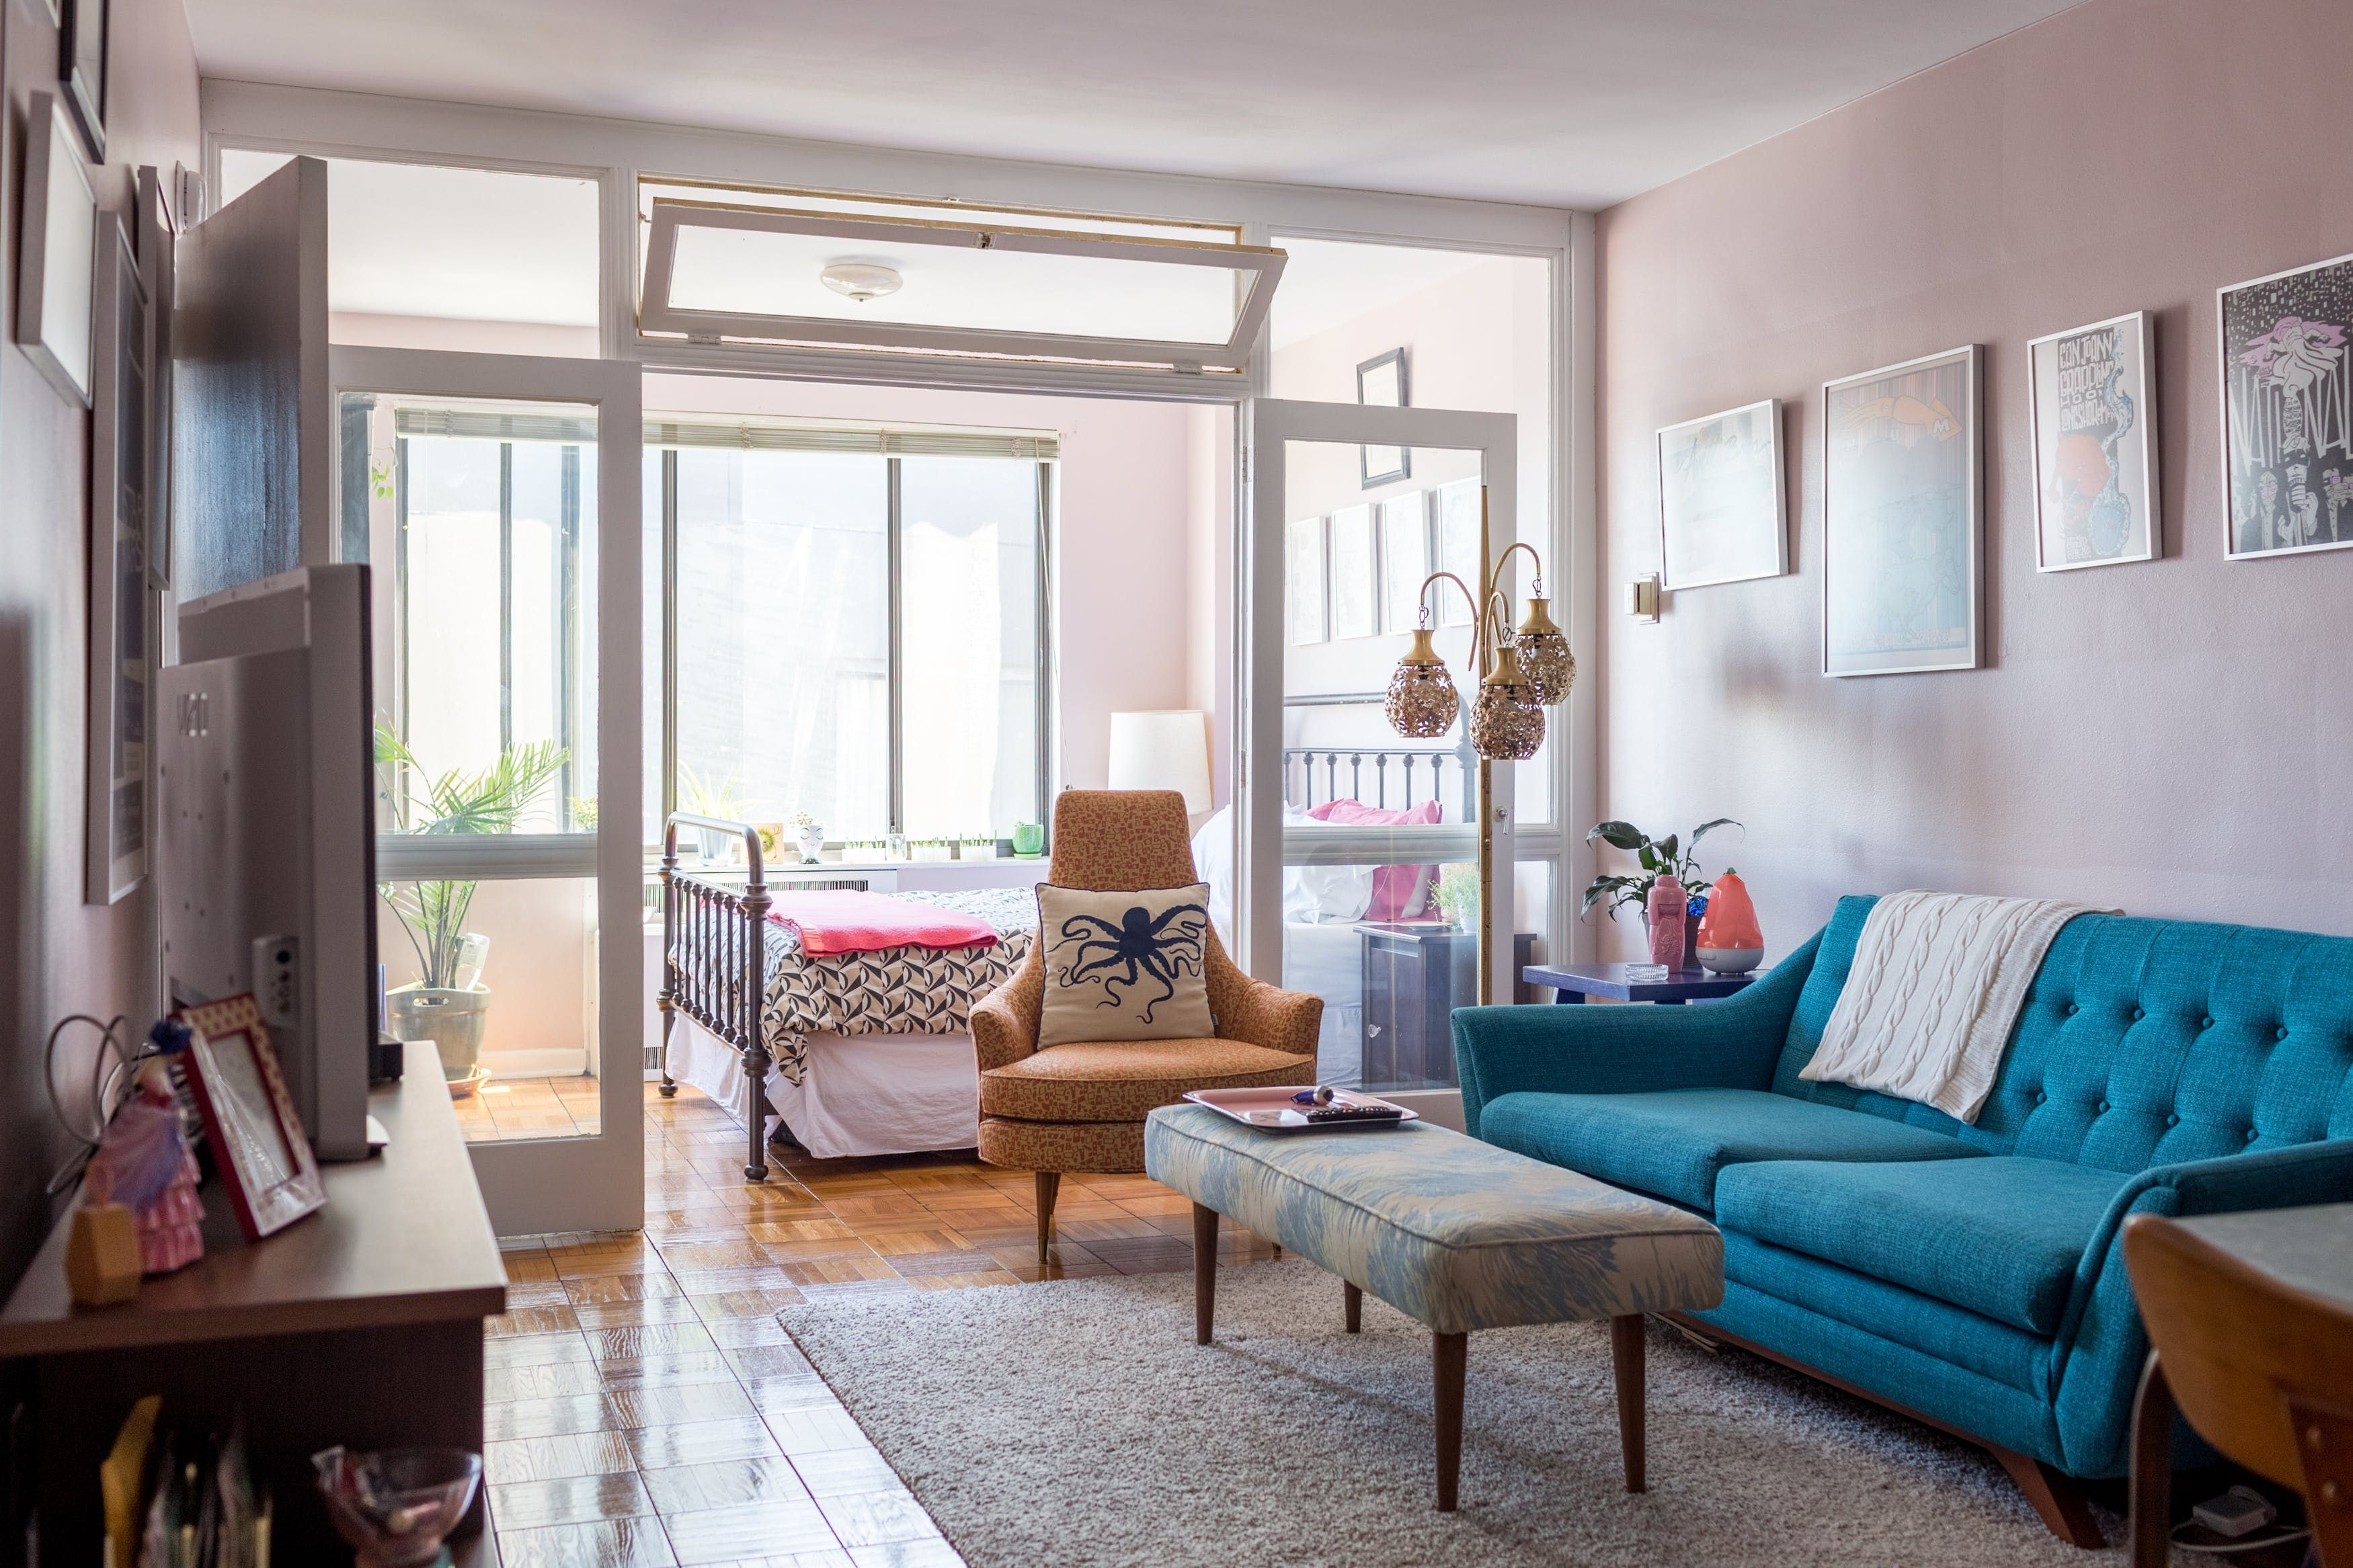 Grace S Studio Apartment Is Only 495 Square Feet The Walls In Living Room And Bedroom Have Been Painted Behr Ash Rose Satin Her Mid Century